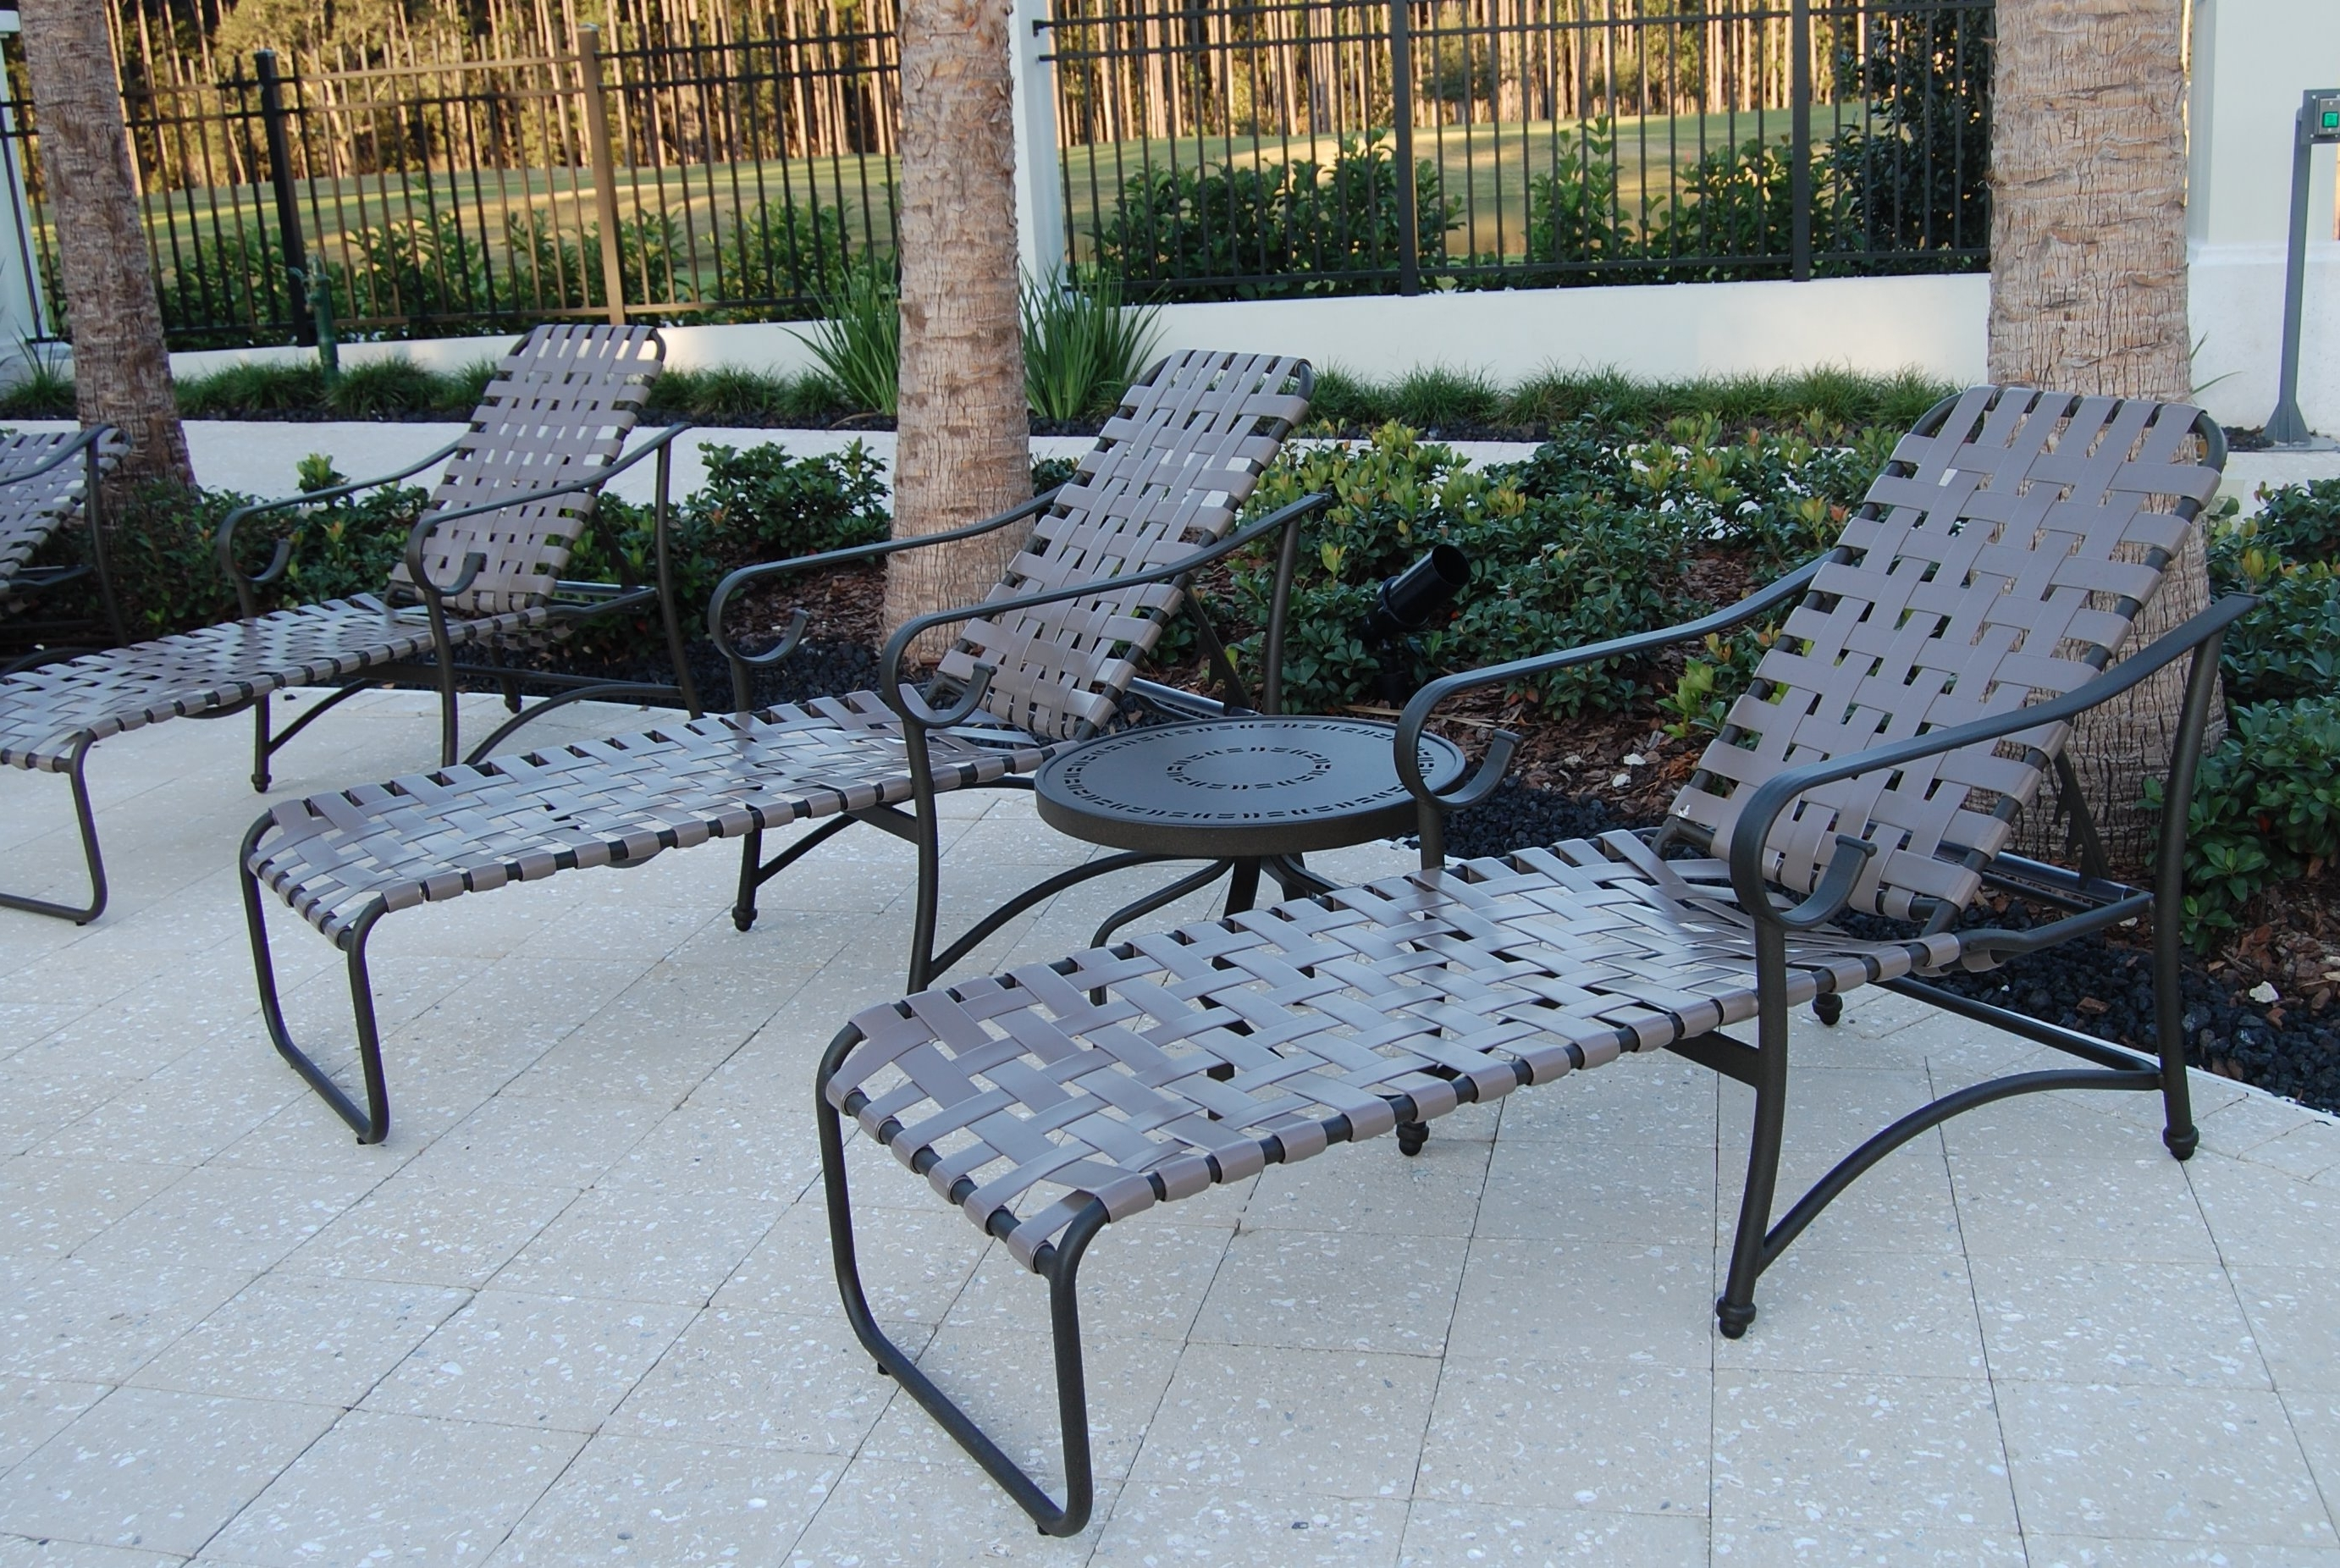 Vinyl Chaise Lounge Chairs Regarding Well Liked Patio Lounge Chair Straps (Gallery 10 of 15)